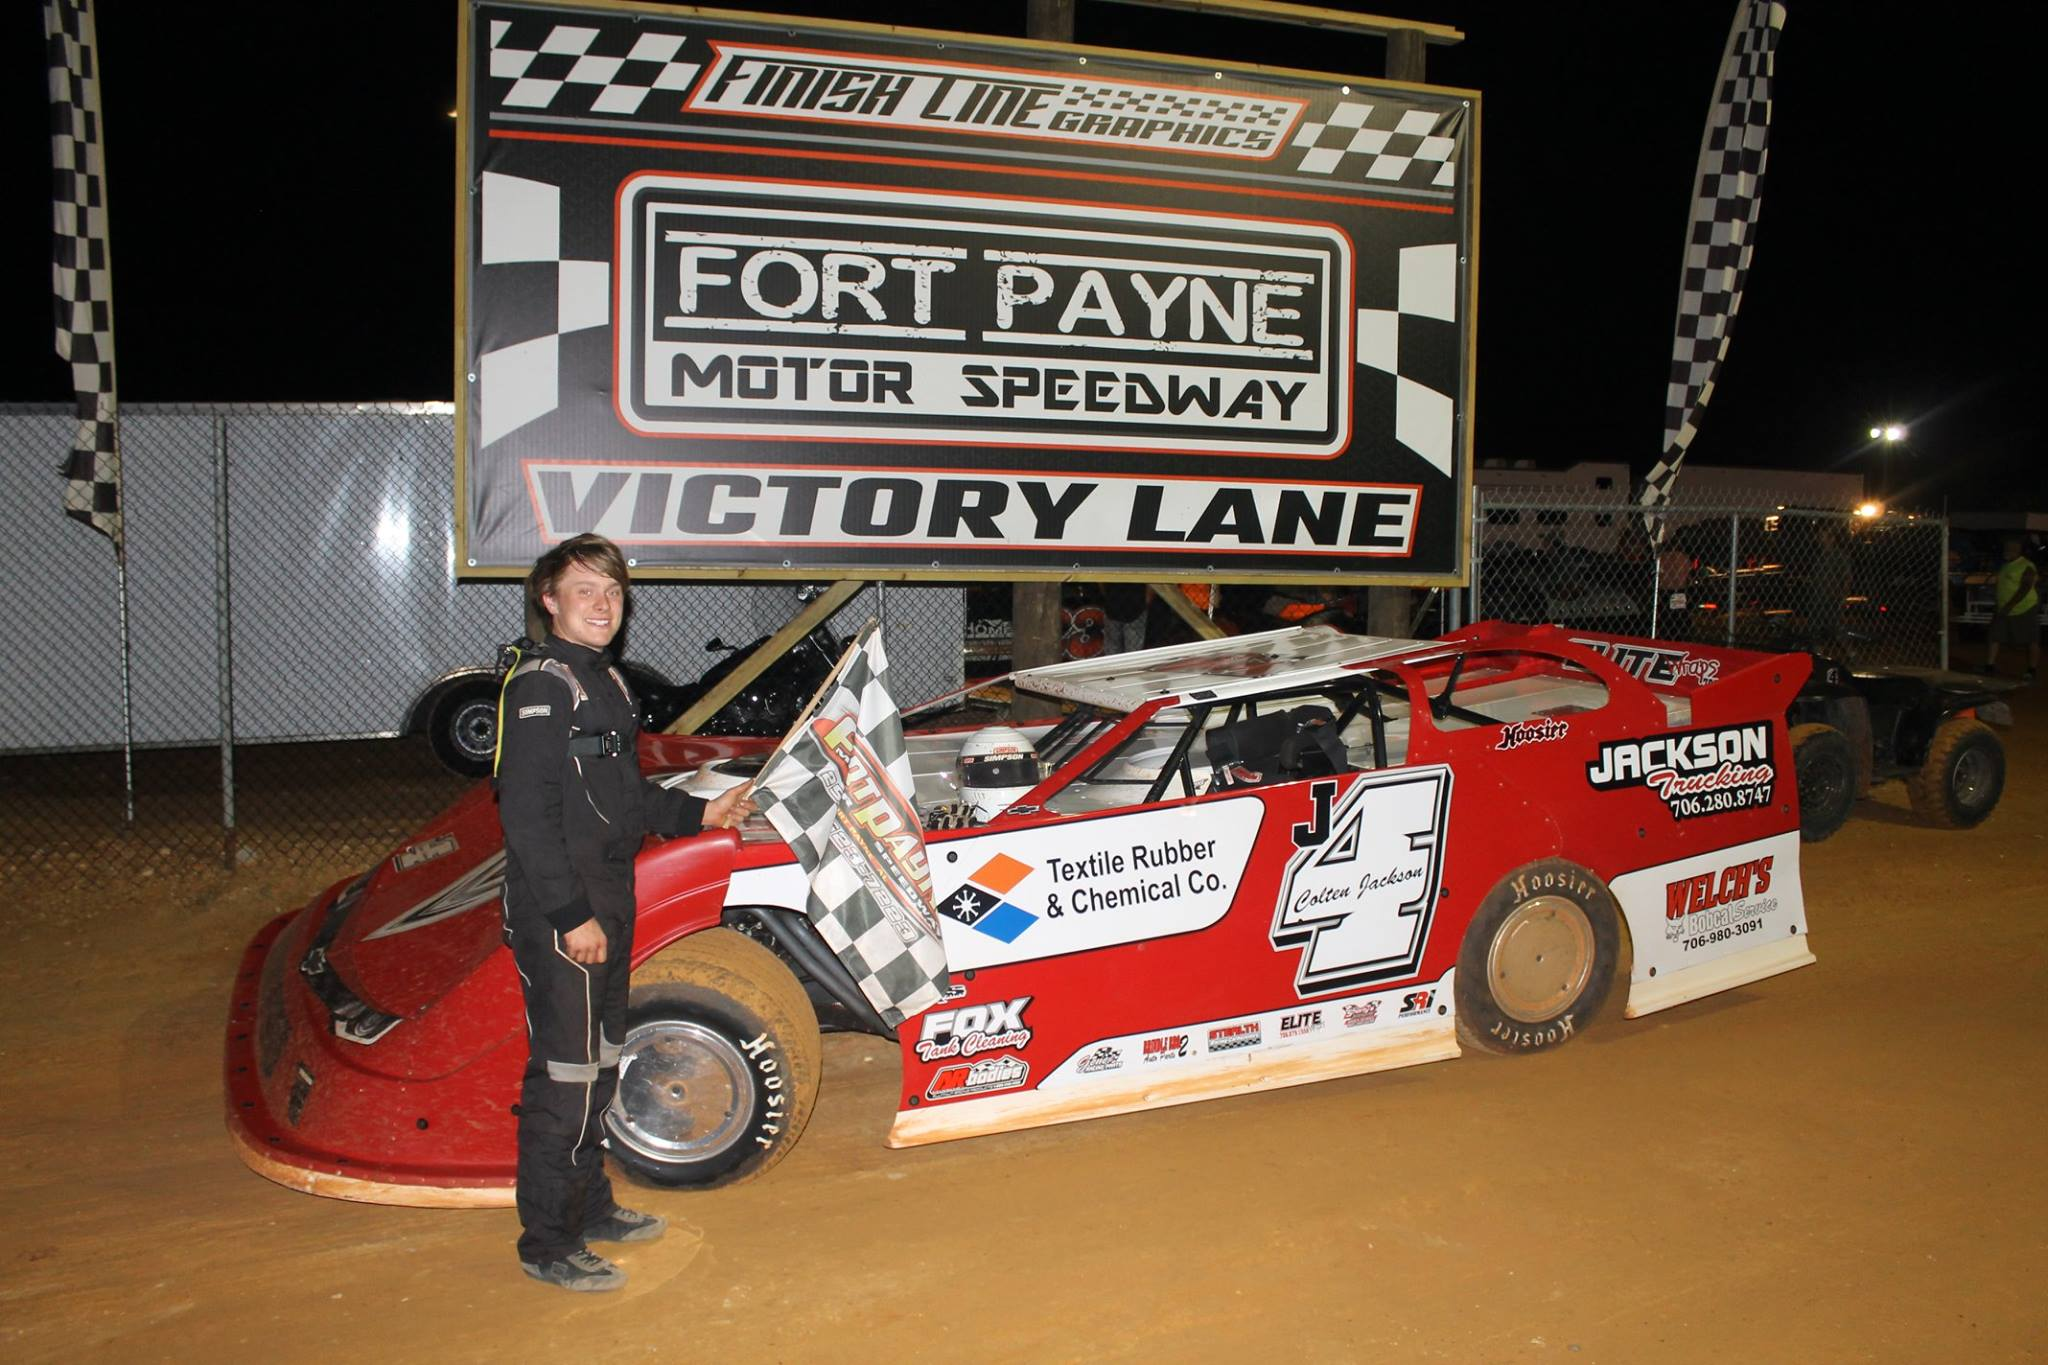 Colten Jackson in victory lane at Fort Payne Motor Speedway